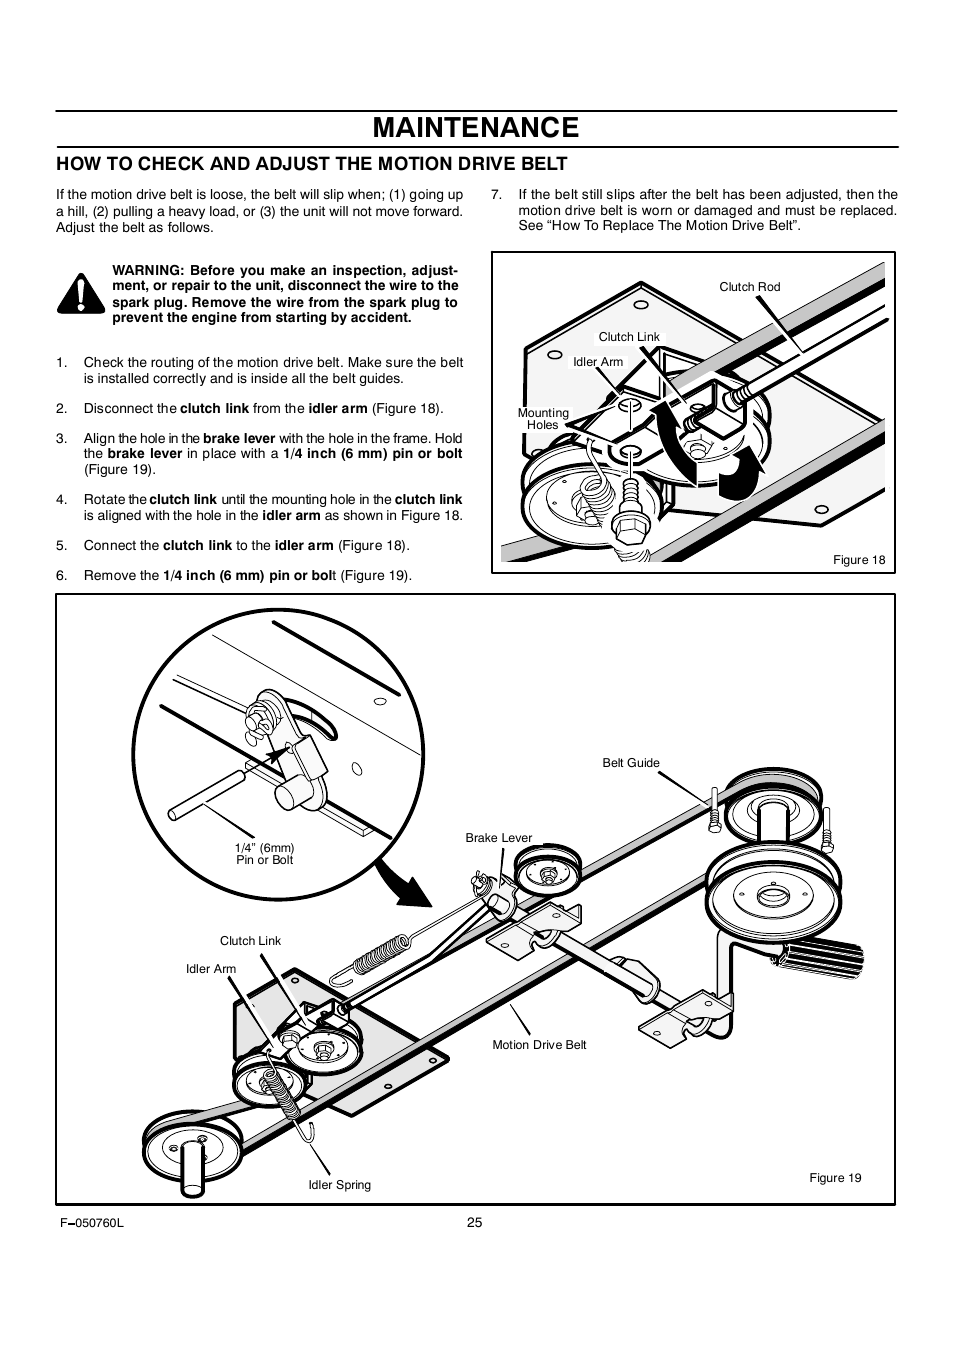 Maintenance, How to check and adjust the motion drive belt | Rover Clipper  405606x108A User